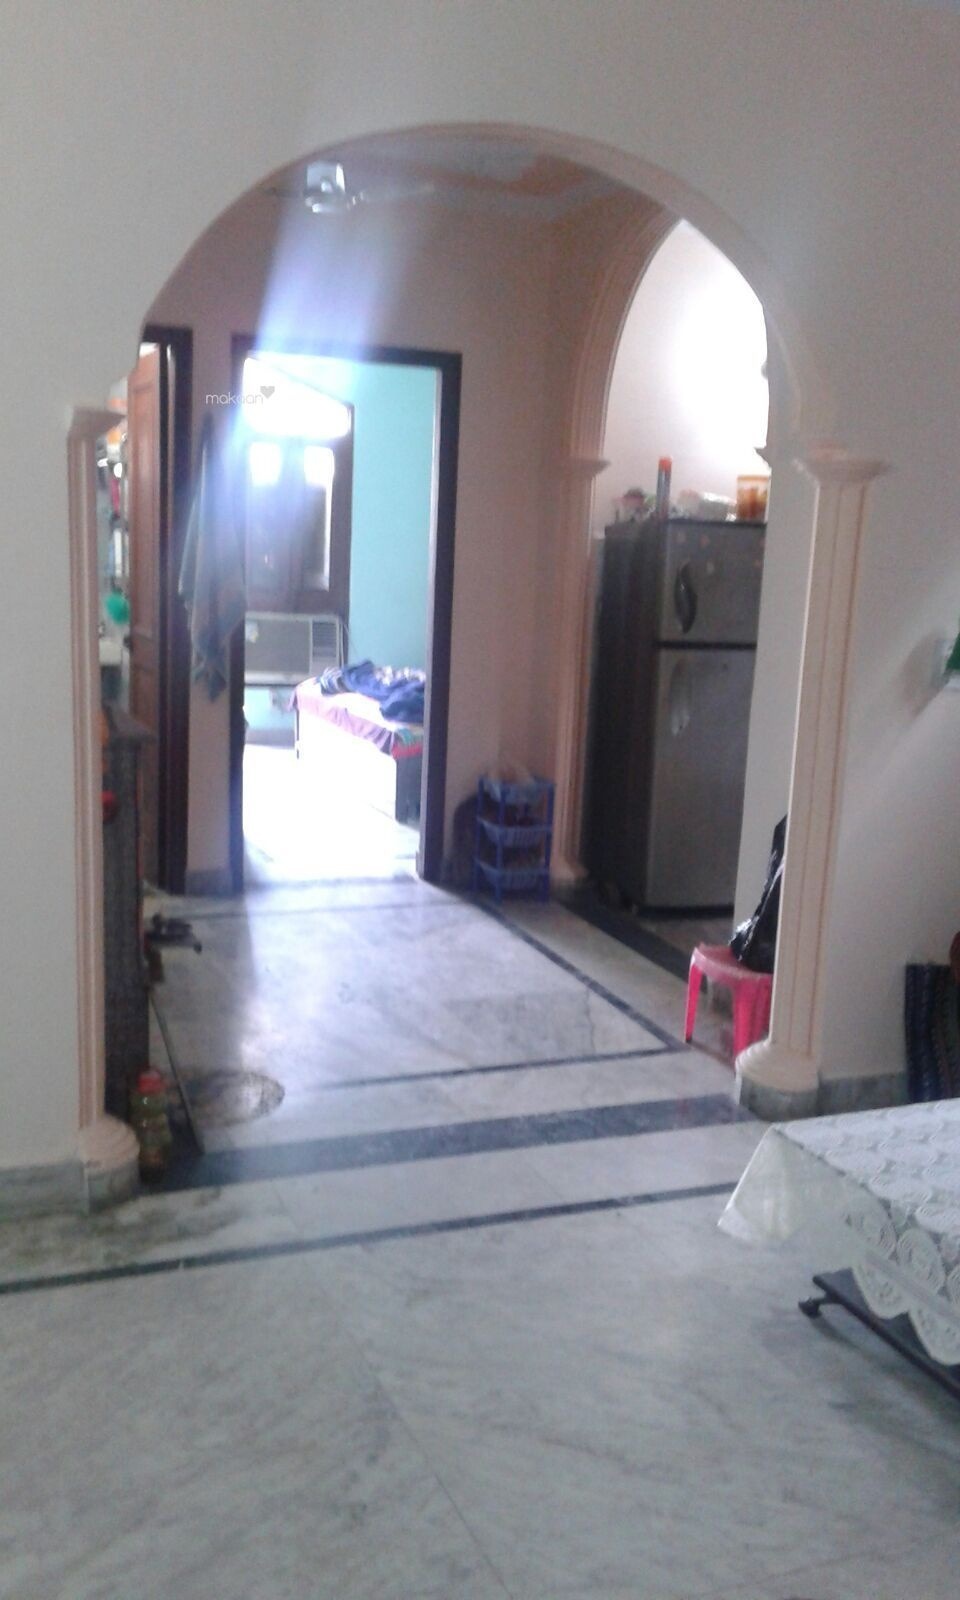 839 sq ft 2BHK 2BHK+2T (839 sq ft) Property By Demera Homz In Project, Sector 5 Vasundhara